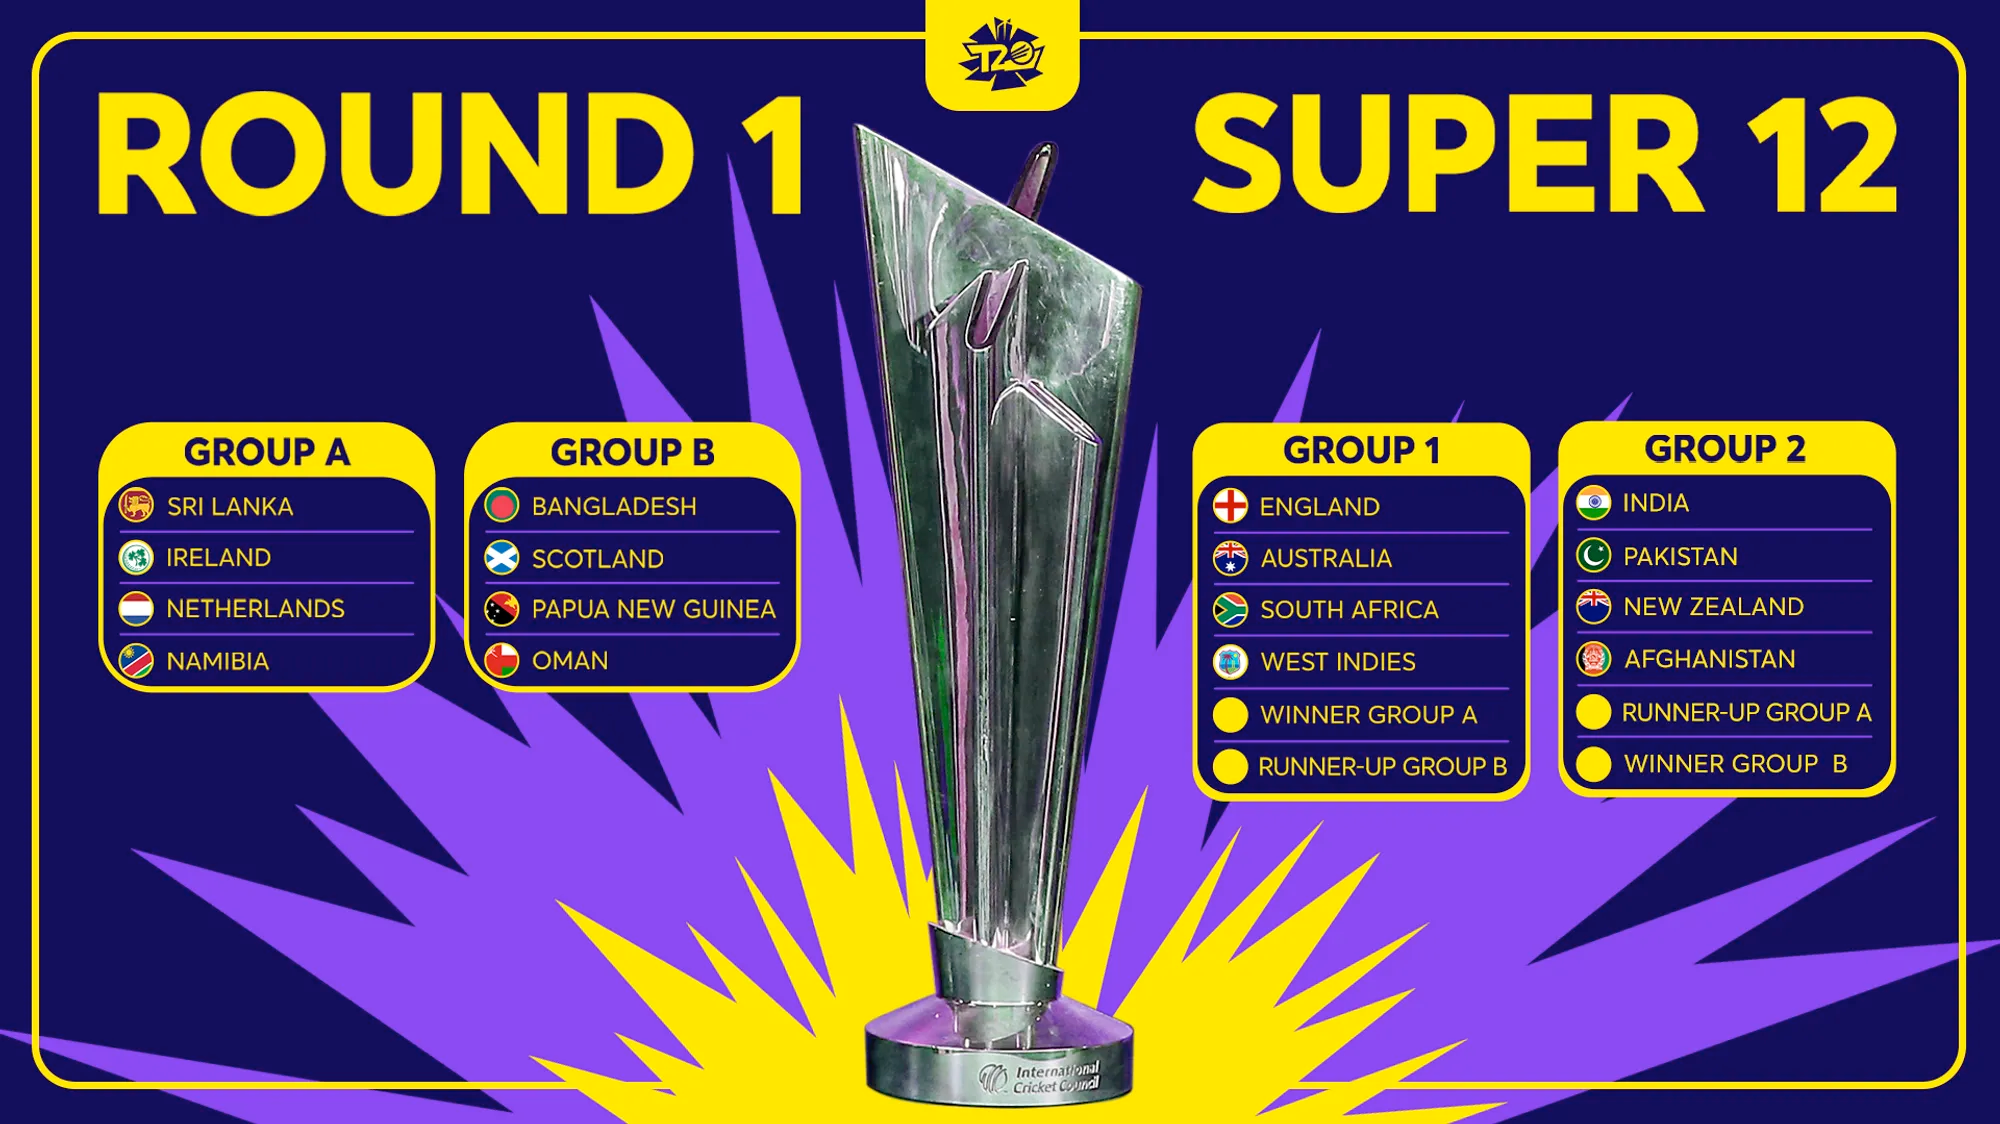 India And Pakistan Placed In Same Group As ICC Announces Groups Ahead Of T20 World Cup 2021